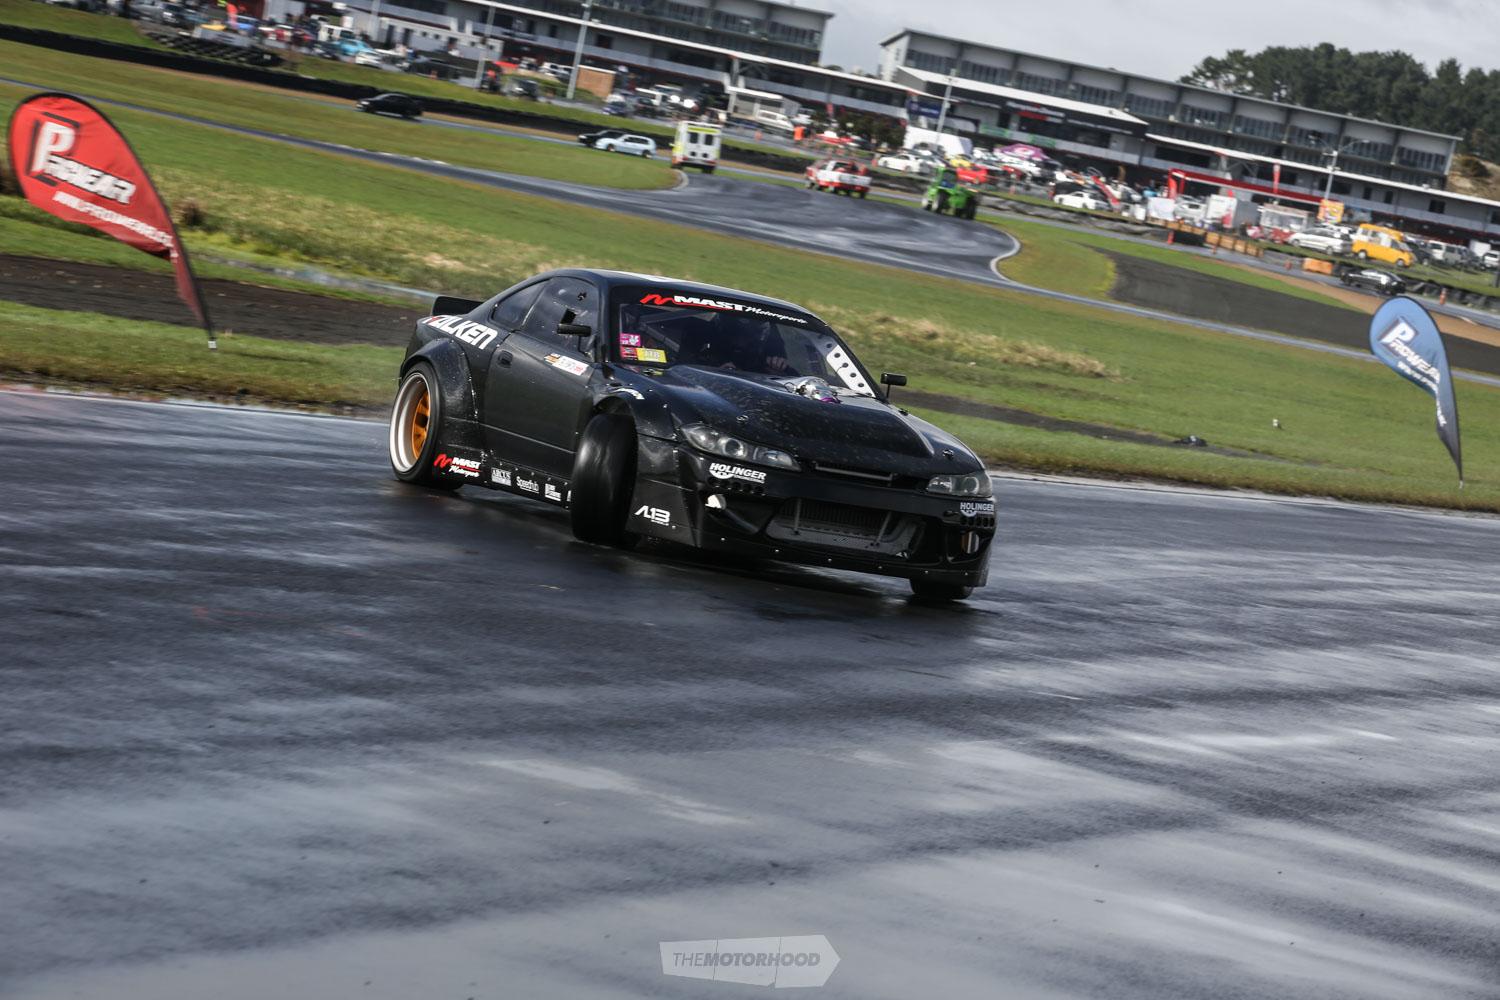 Carl Thompson is no stranger to killer V8 engine packages in his pair of drift Silvias, using the event to shake down his latest combo. Based around a Dart block, with a billet crank, and 430cfm Mast Str8jacket Heads, capacity sits at 428ci. Currently it's pushing 1220hp to the tyre with the Vortech ysi-b supercharger running 16psi